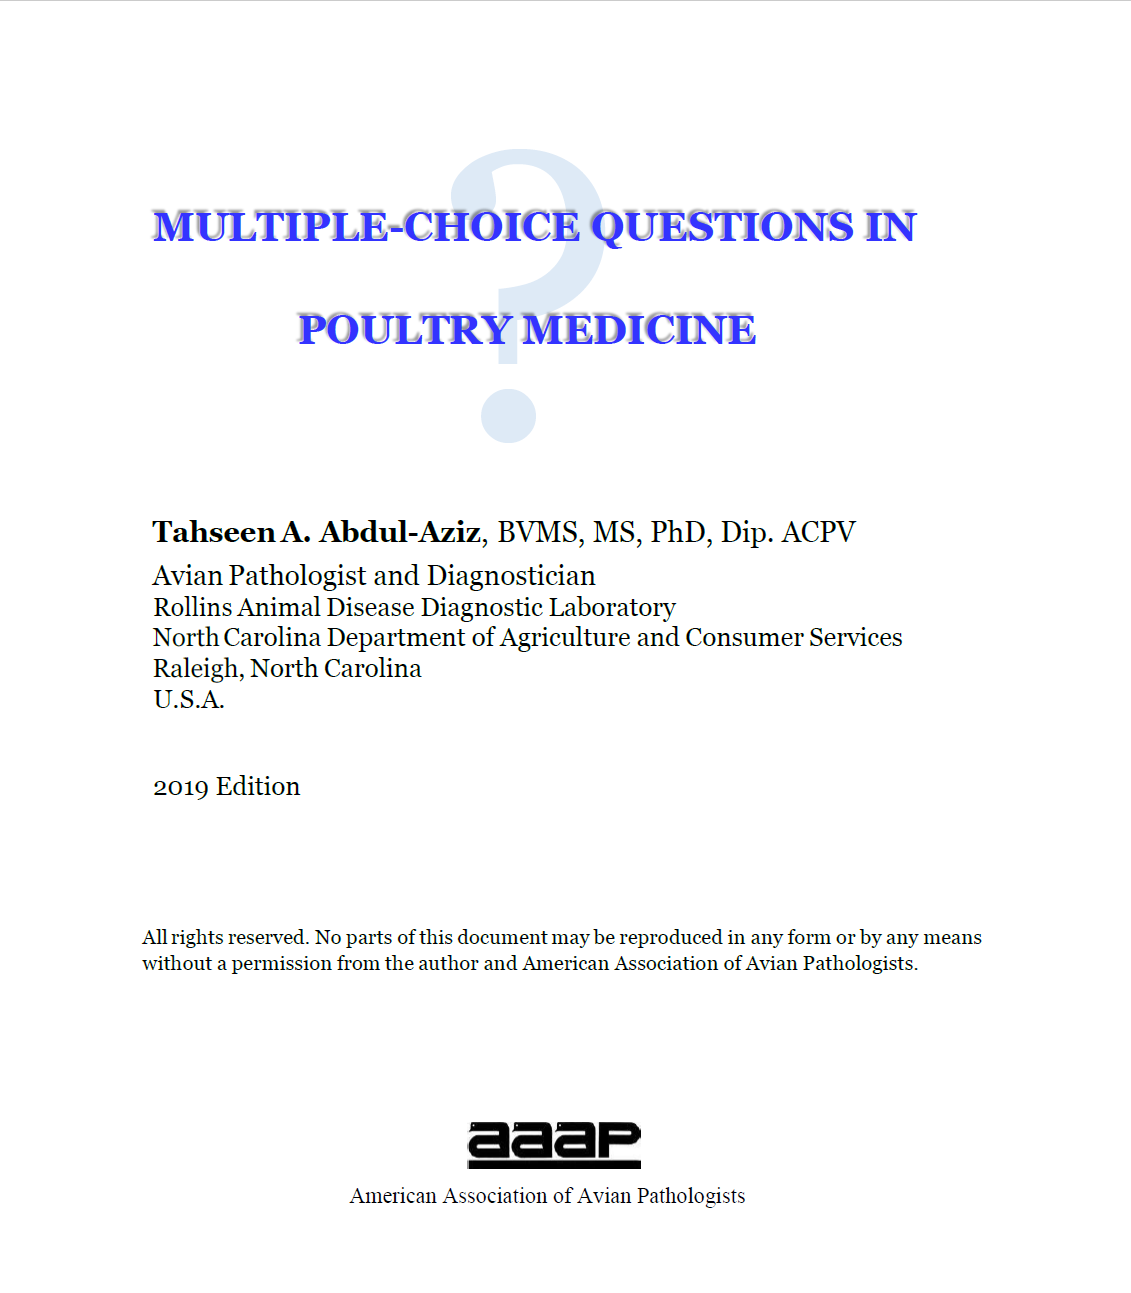 Multiple-Choice Questions in Poultry Medicine